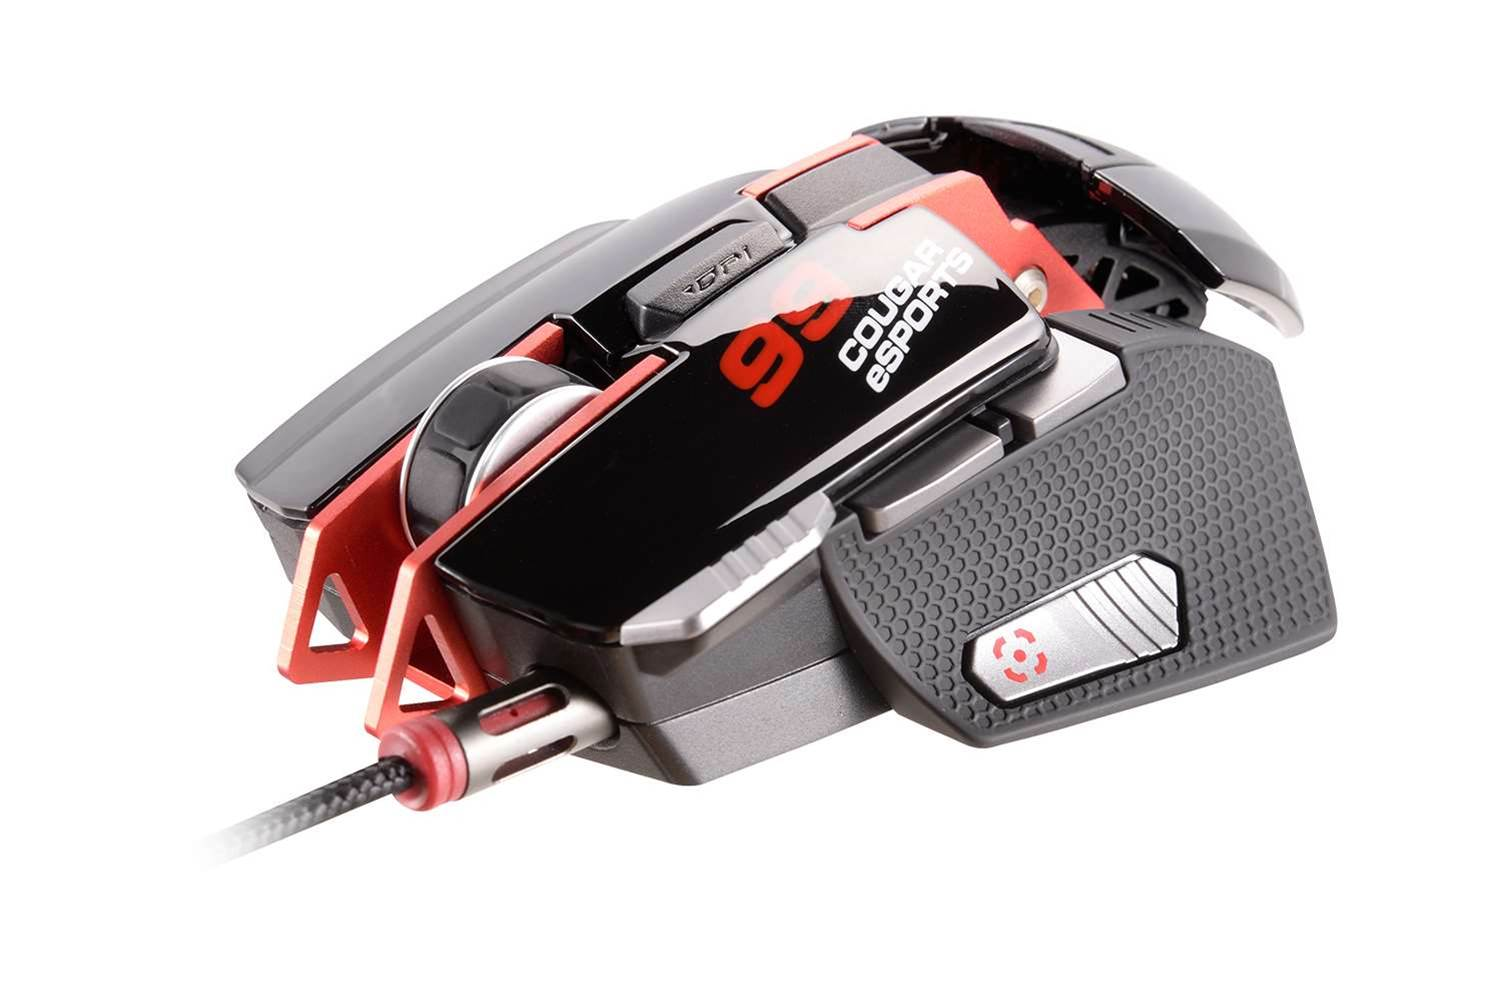 Cougar adds eSports edition to its 700M mouse range